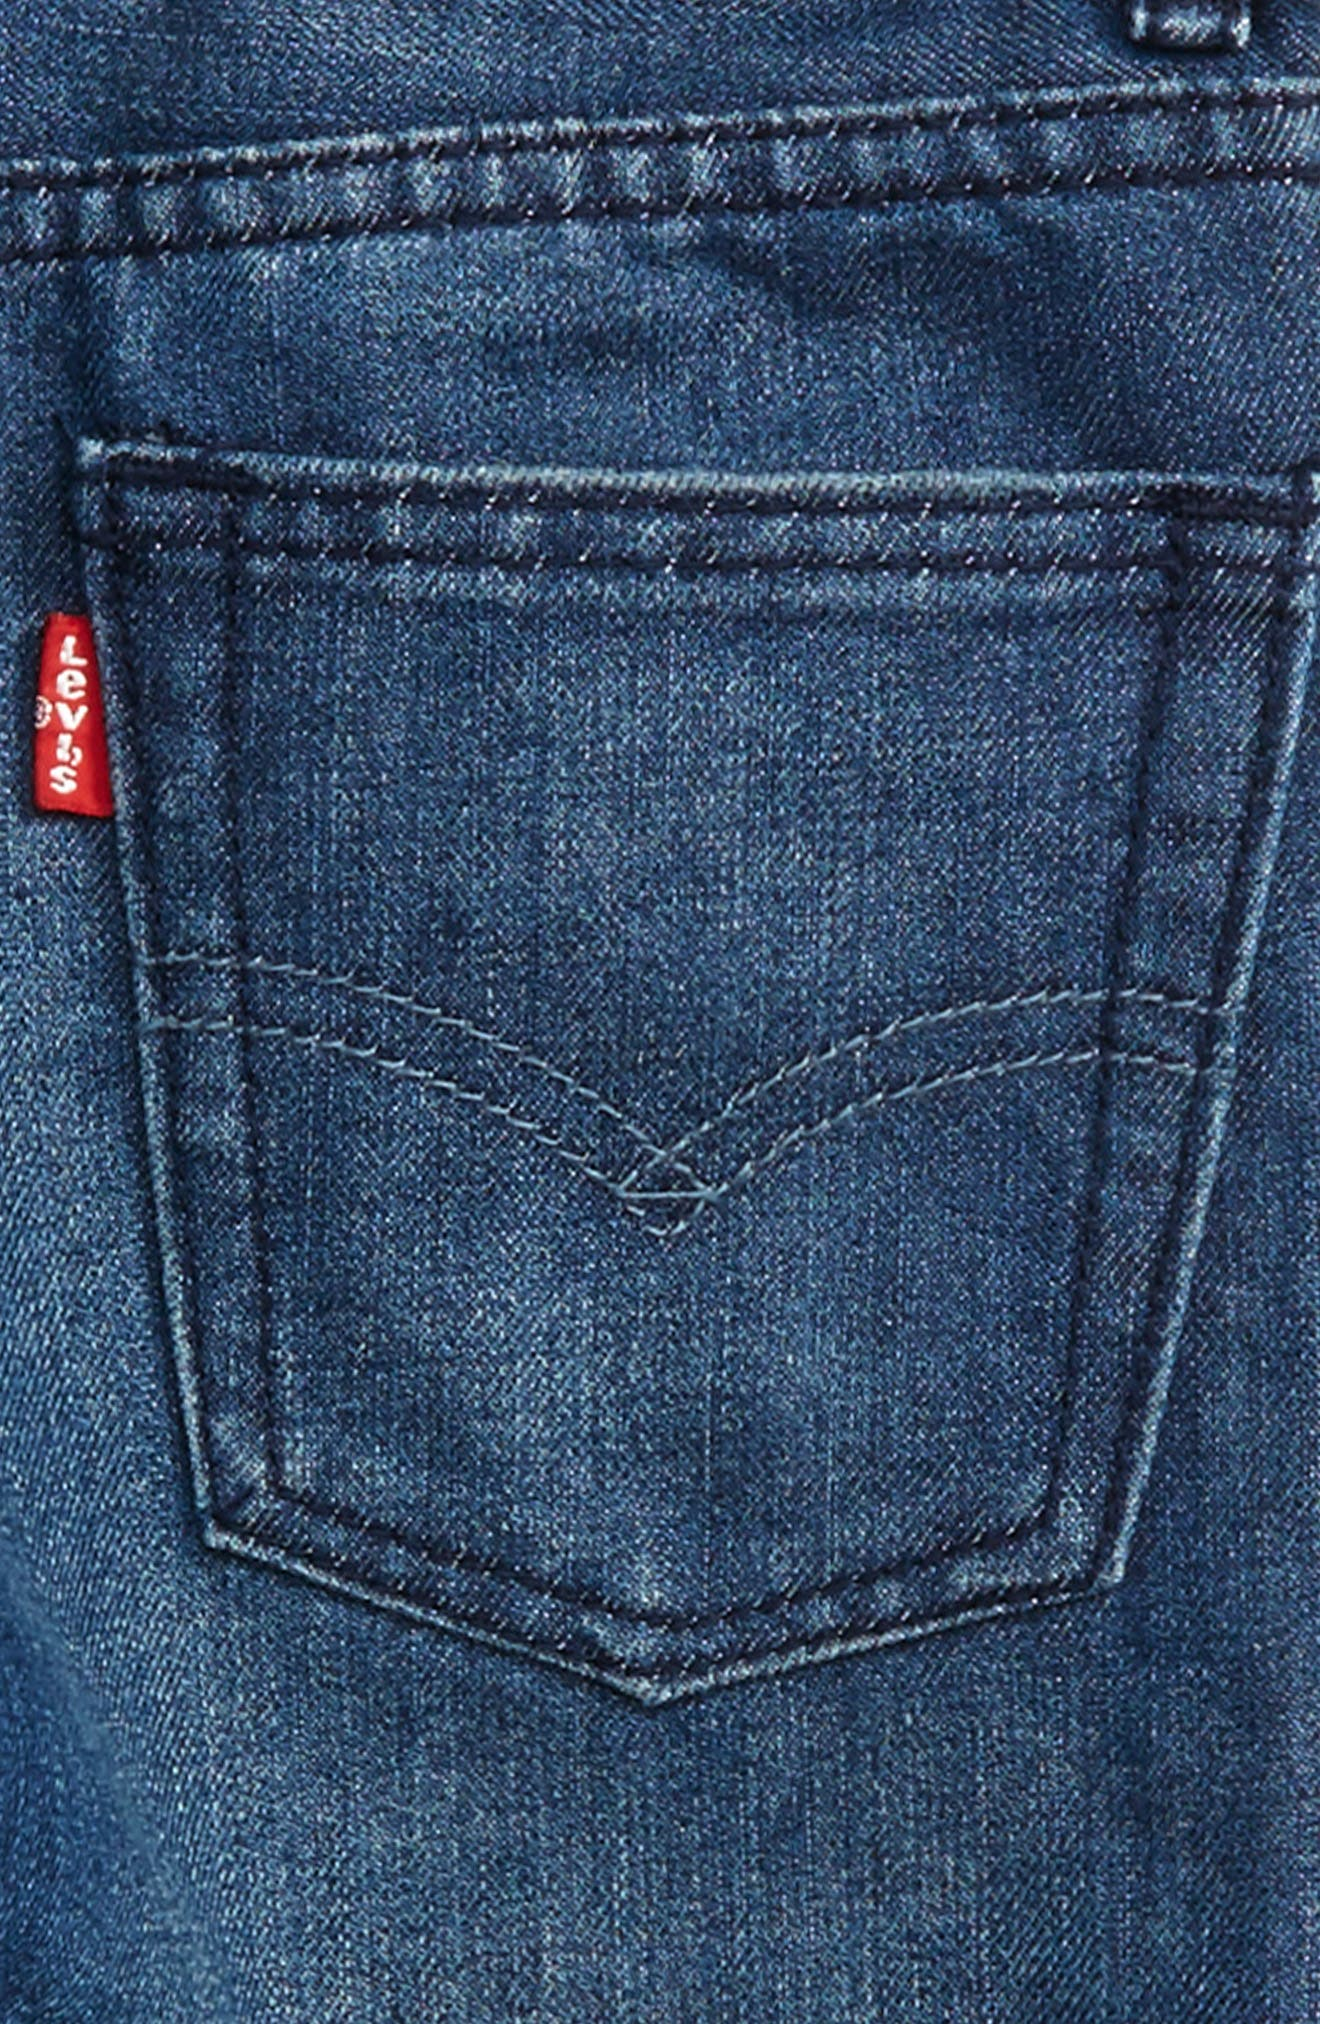 514<sup>™</sup> Straight Leg Jeans,                             Alternate thumbnail 3, color,                             421